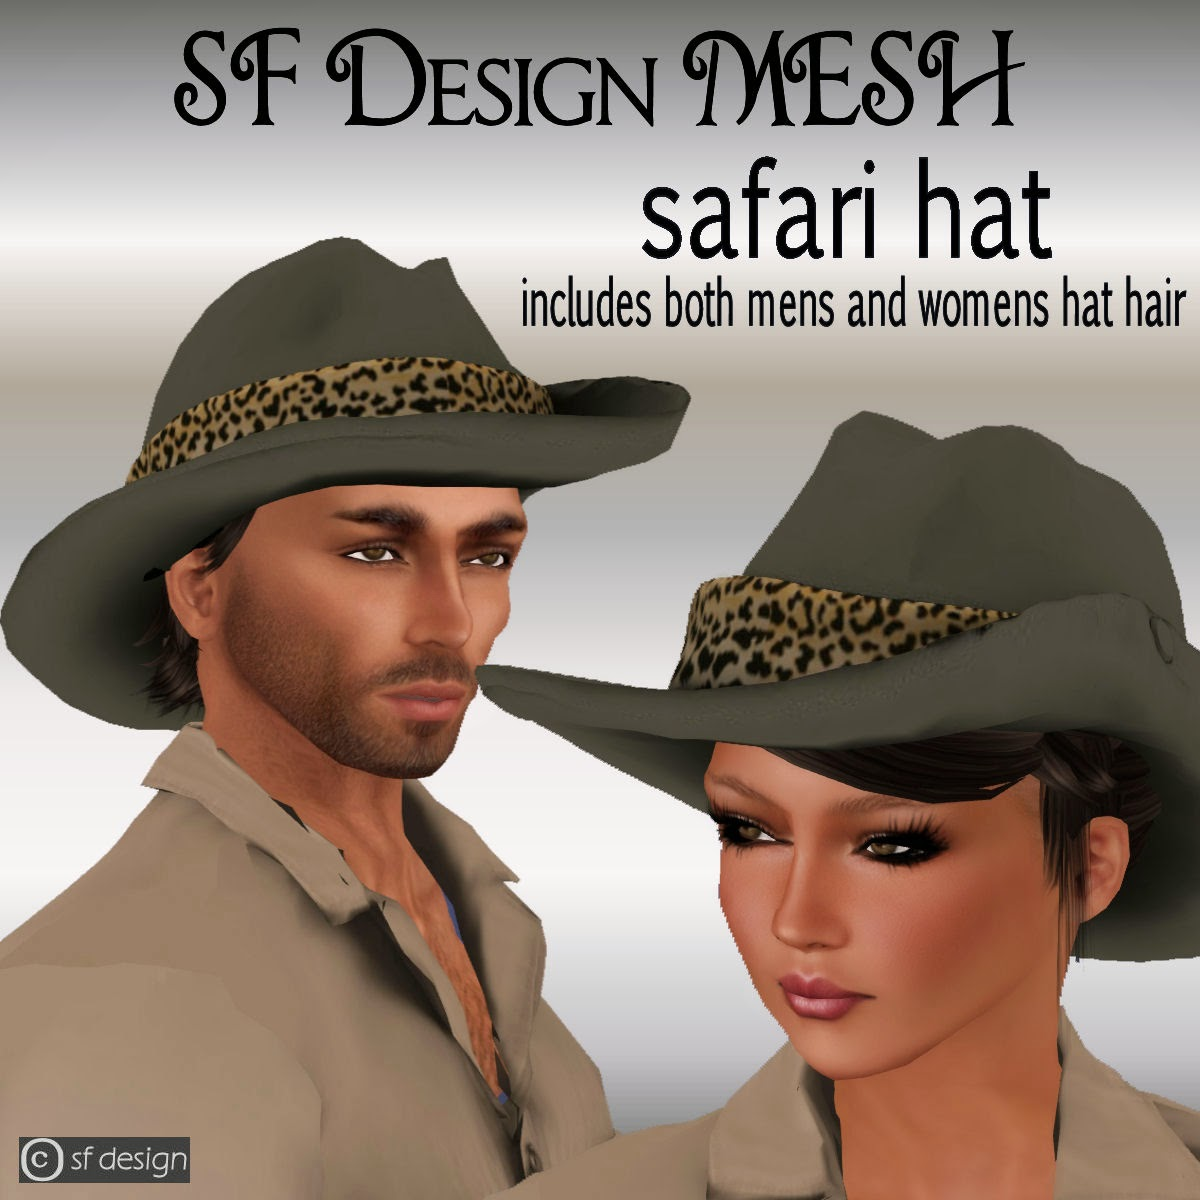 sf design - avatar clothing by swaffette Firefly: June 2014